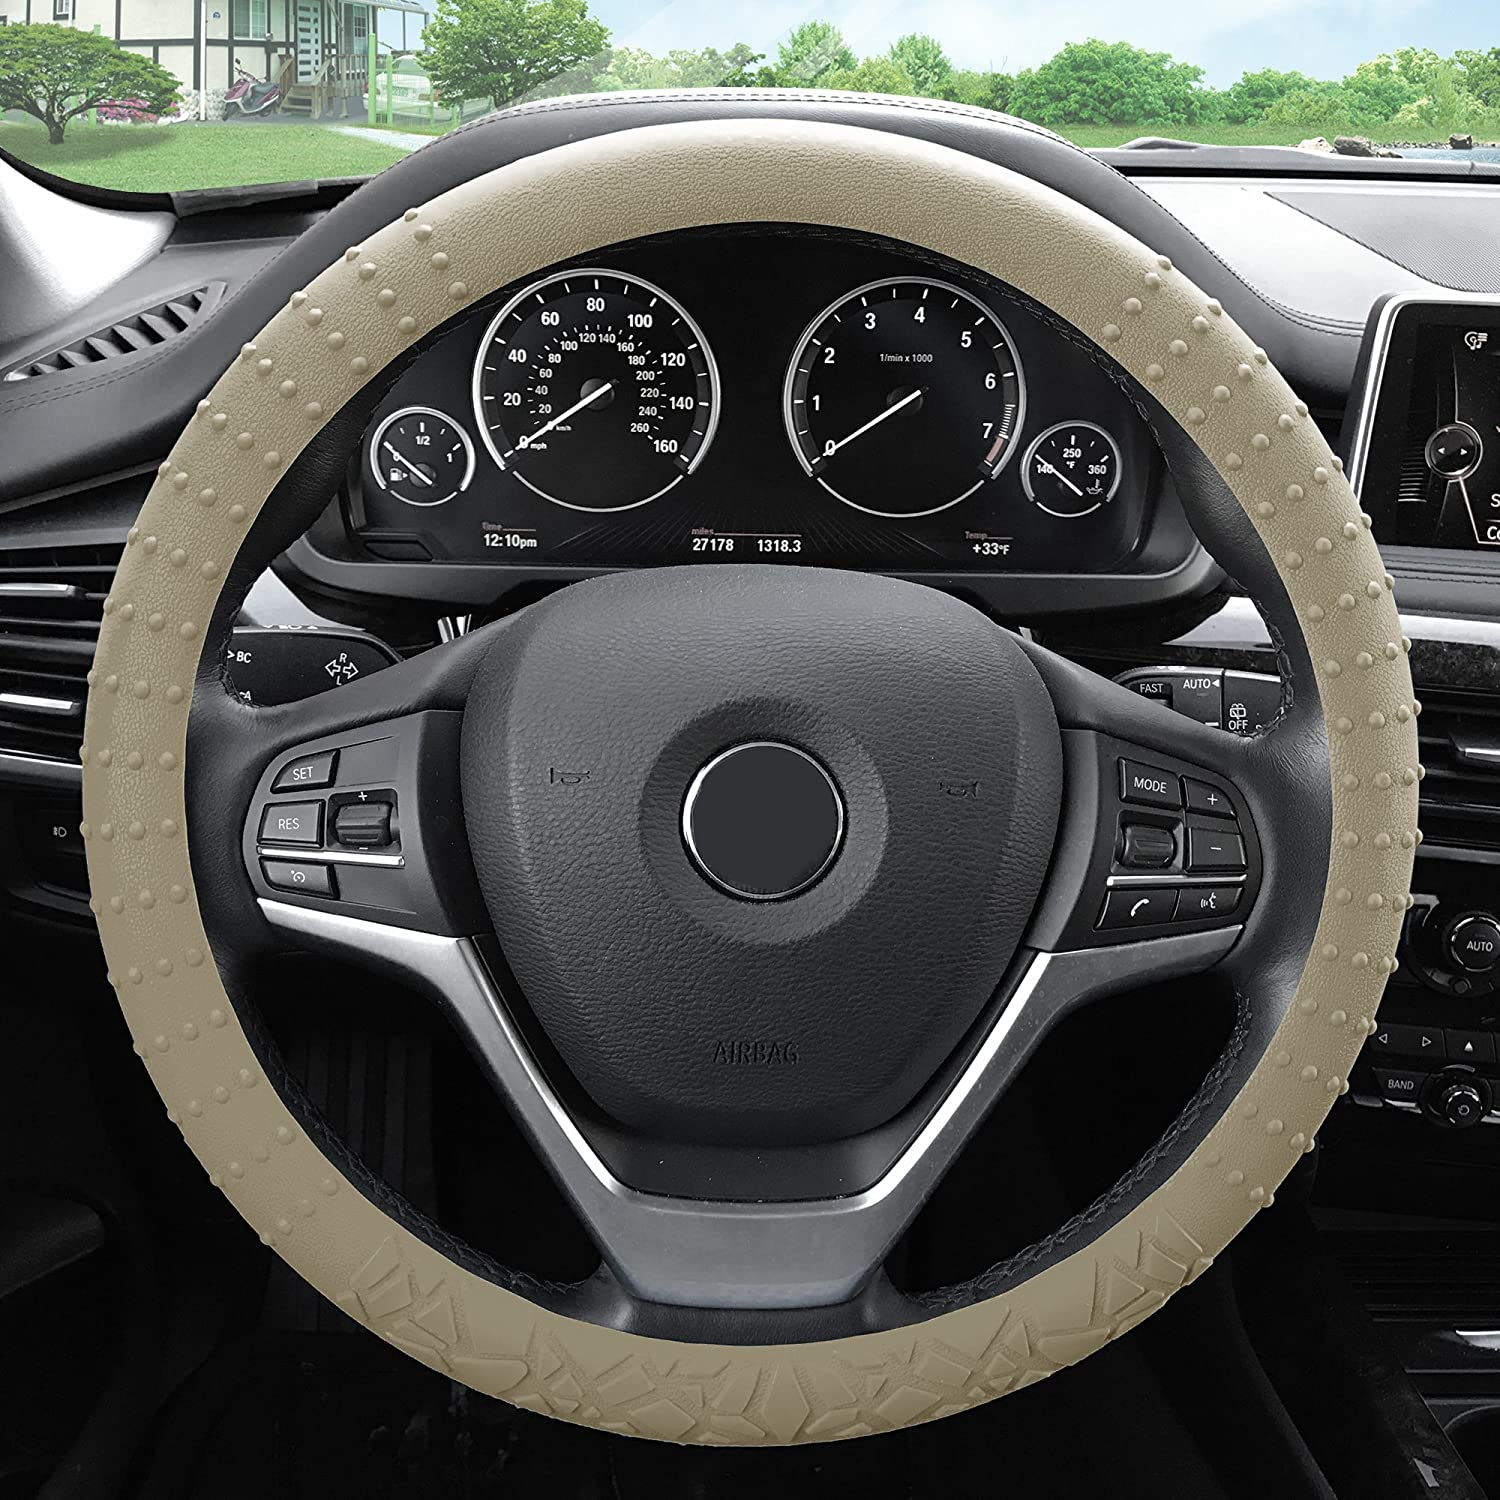 Silicone W. Nibs /& Pattern Massaging Grip Wheel Cover Color-Fit Most Car Truck SUV or Van FH Group FH3002PURPLE Purple Steering Wheel Cover